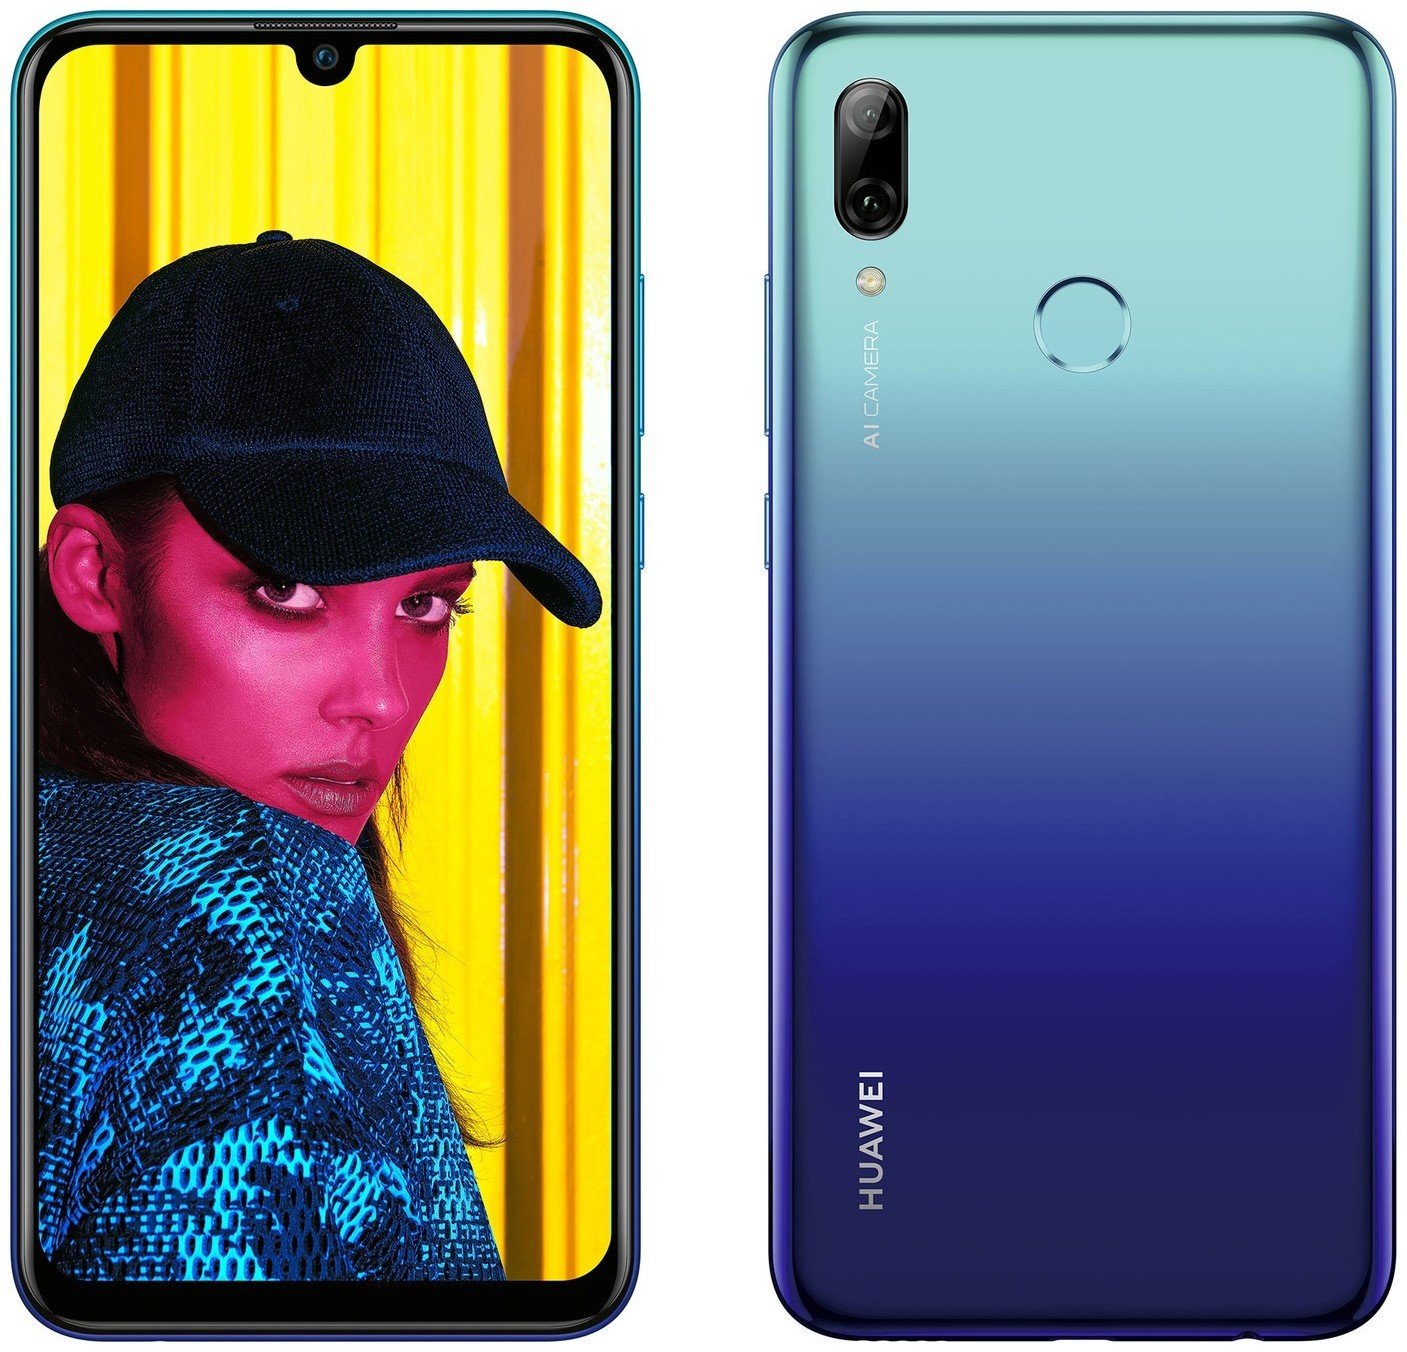 Huawei P Smart 2019 Pot Lx1 Specs And Price Phonegg